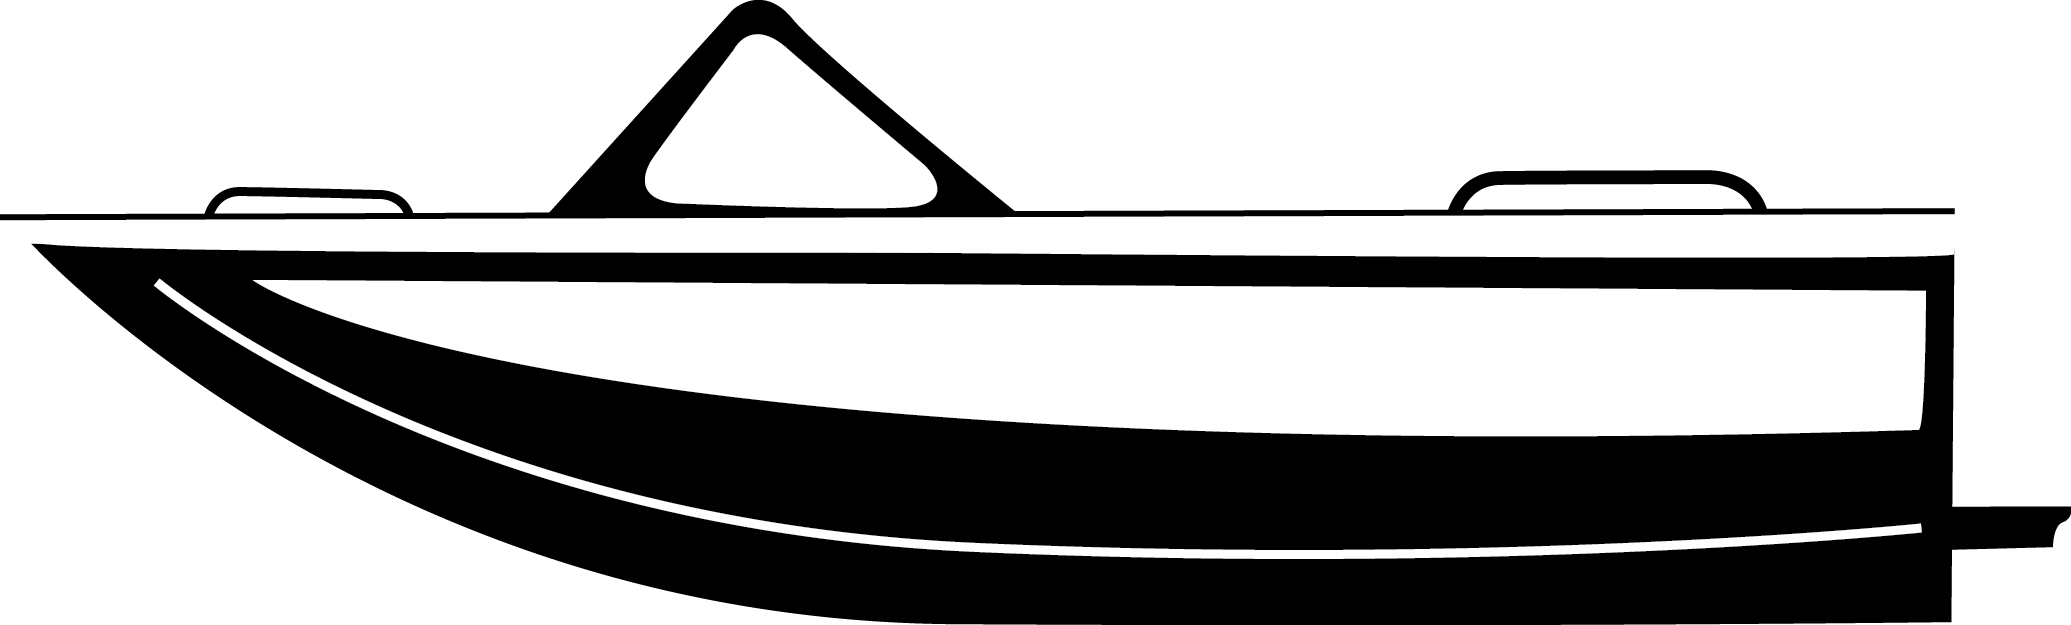 image black and white stock Weldcraft marine river. Vector boat jet